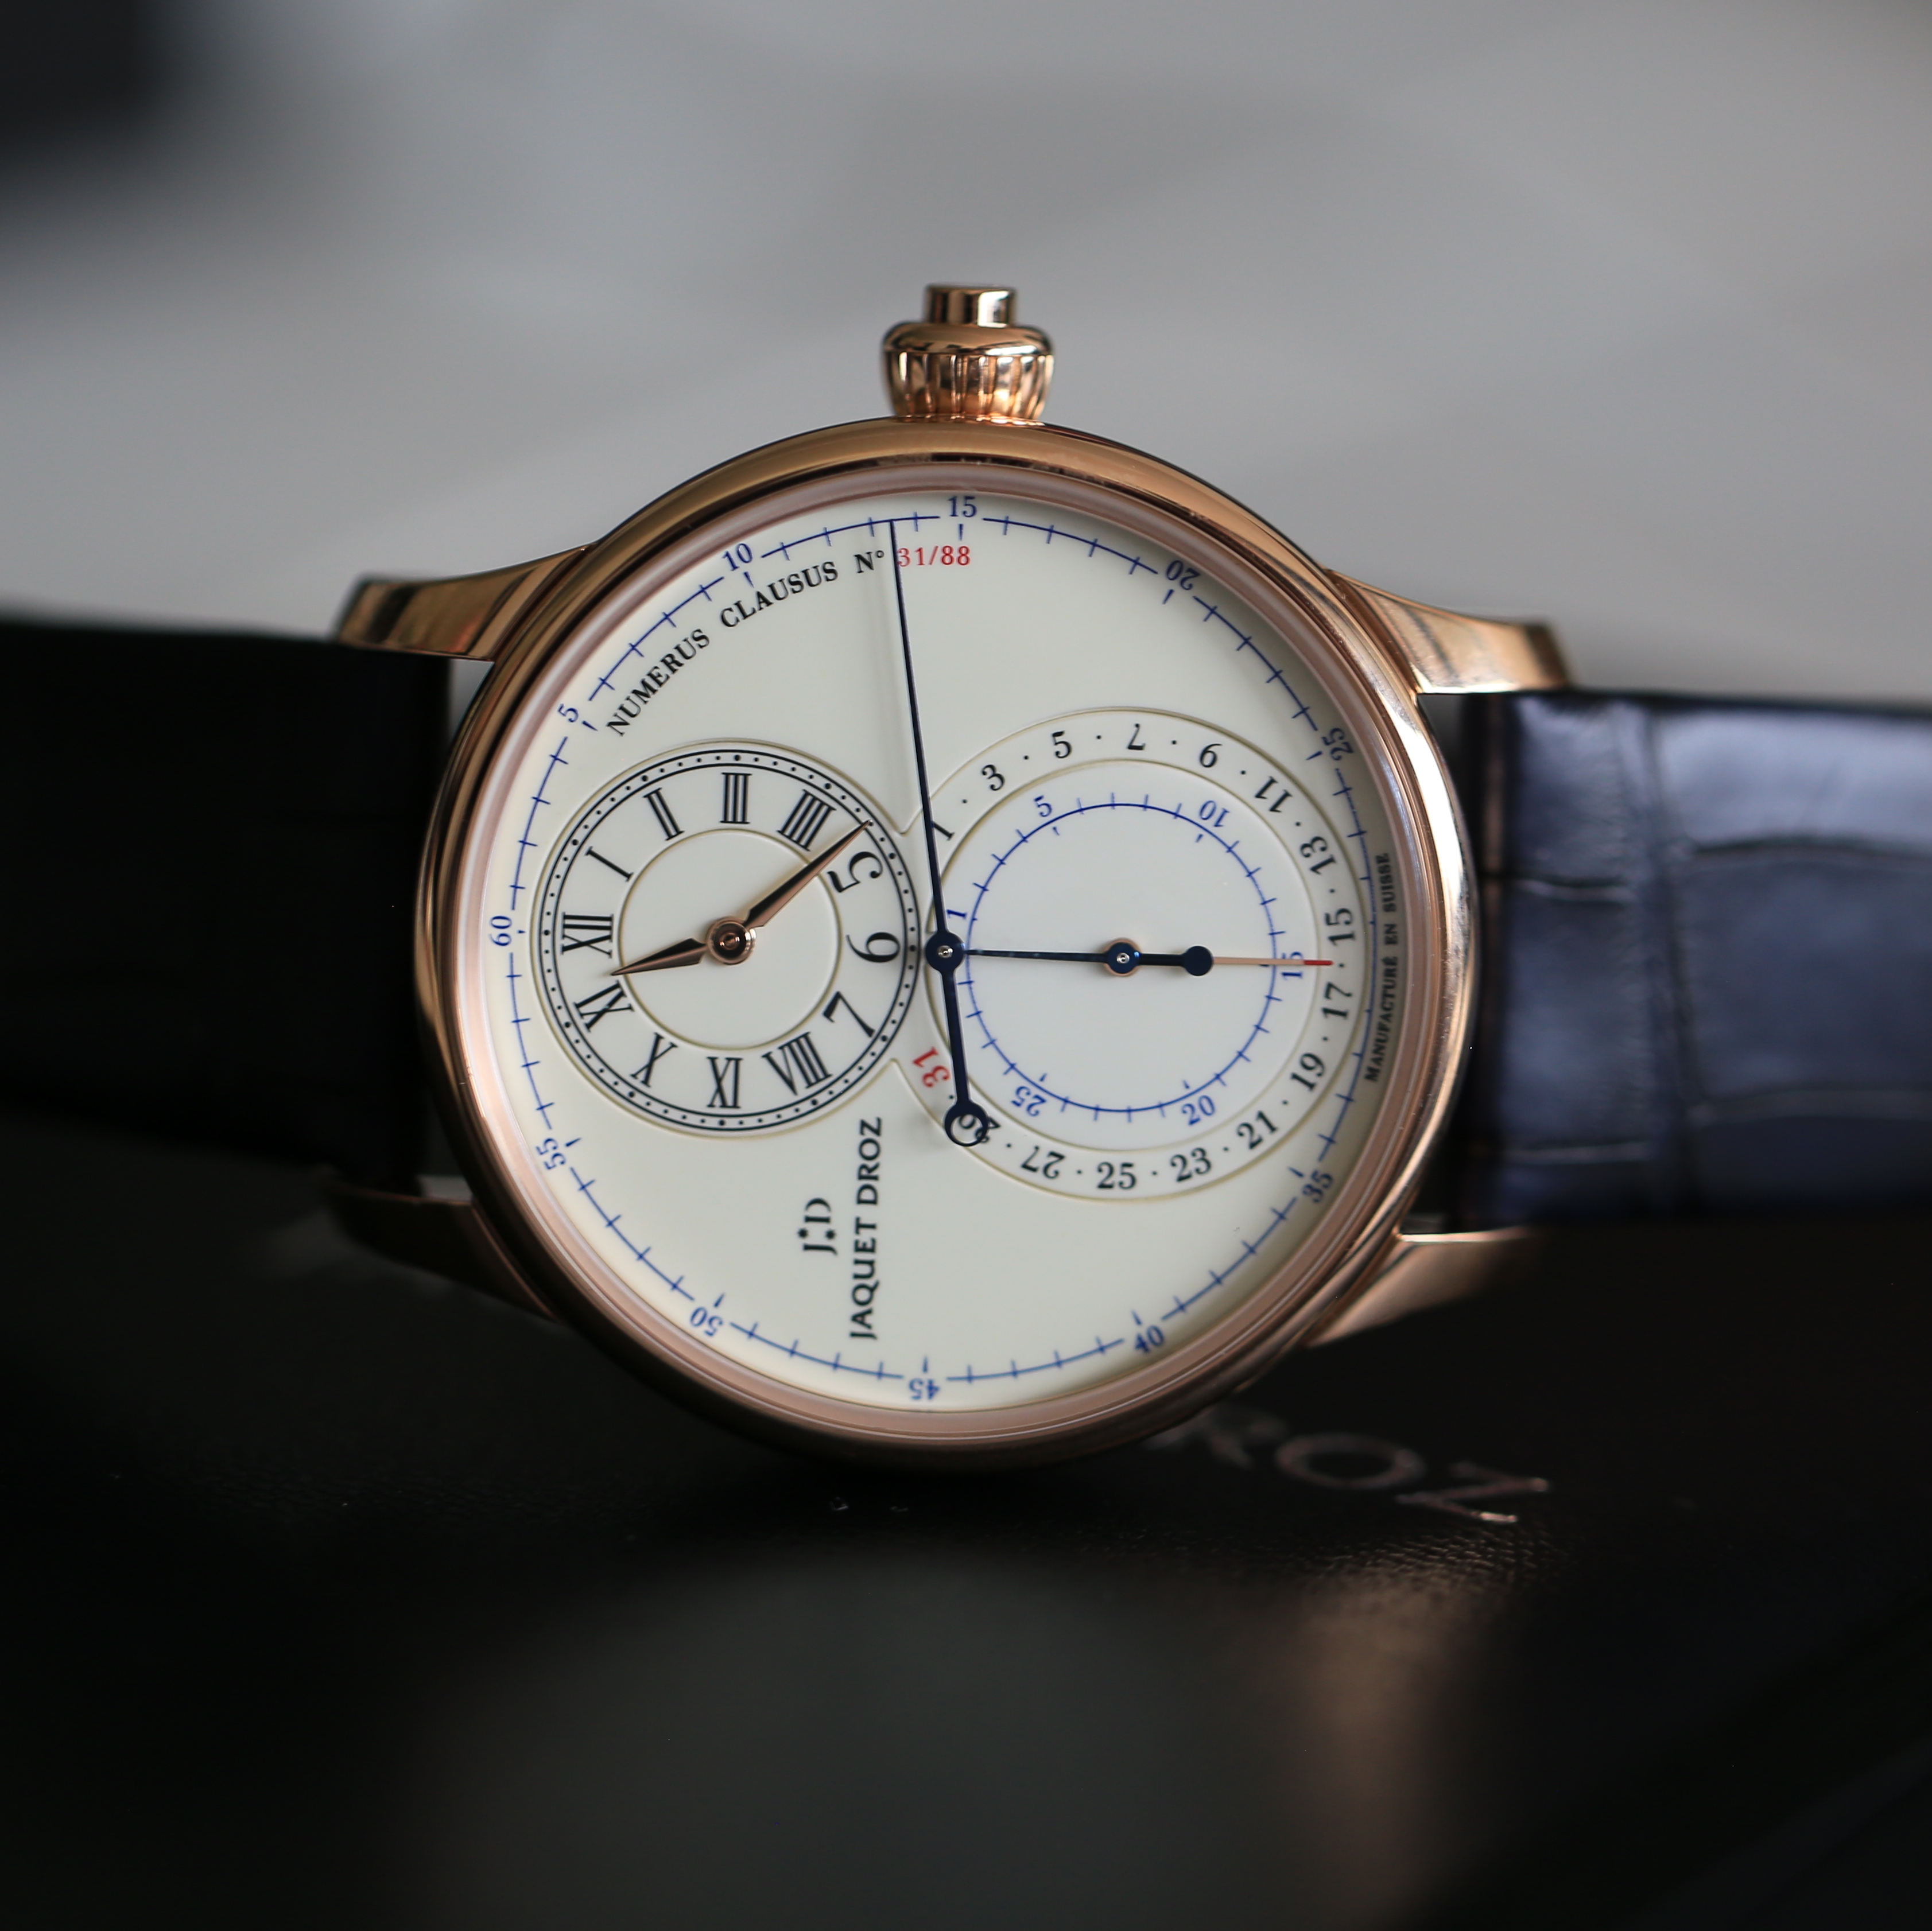 Swatch Group 2019 Release: The Jaquet Droz Grande Seconde Monopusher Chronograph